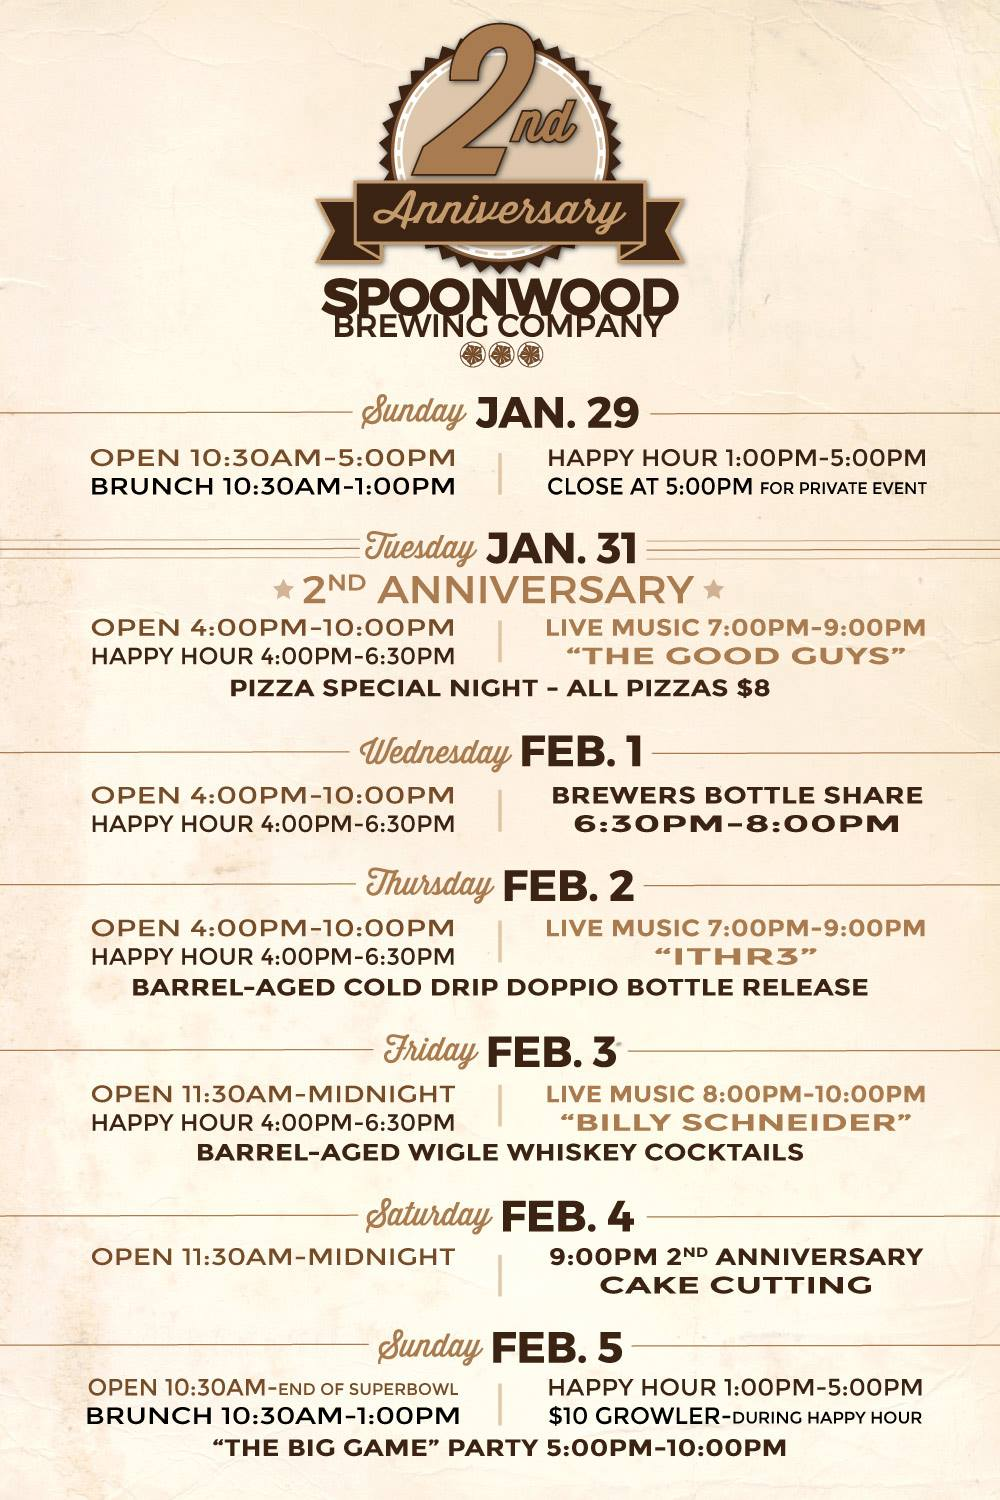 2nd Anniversary Spoonwood Brewing C.